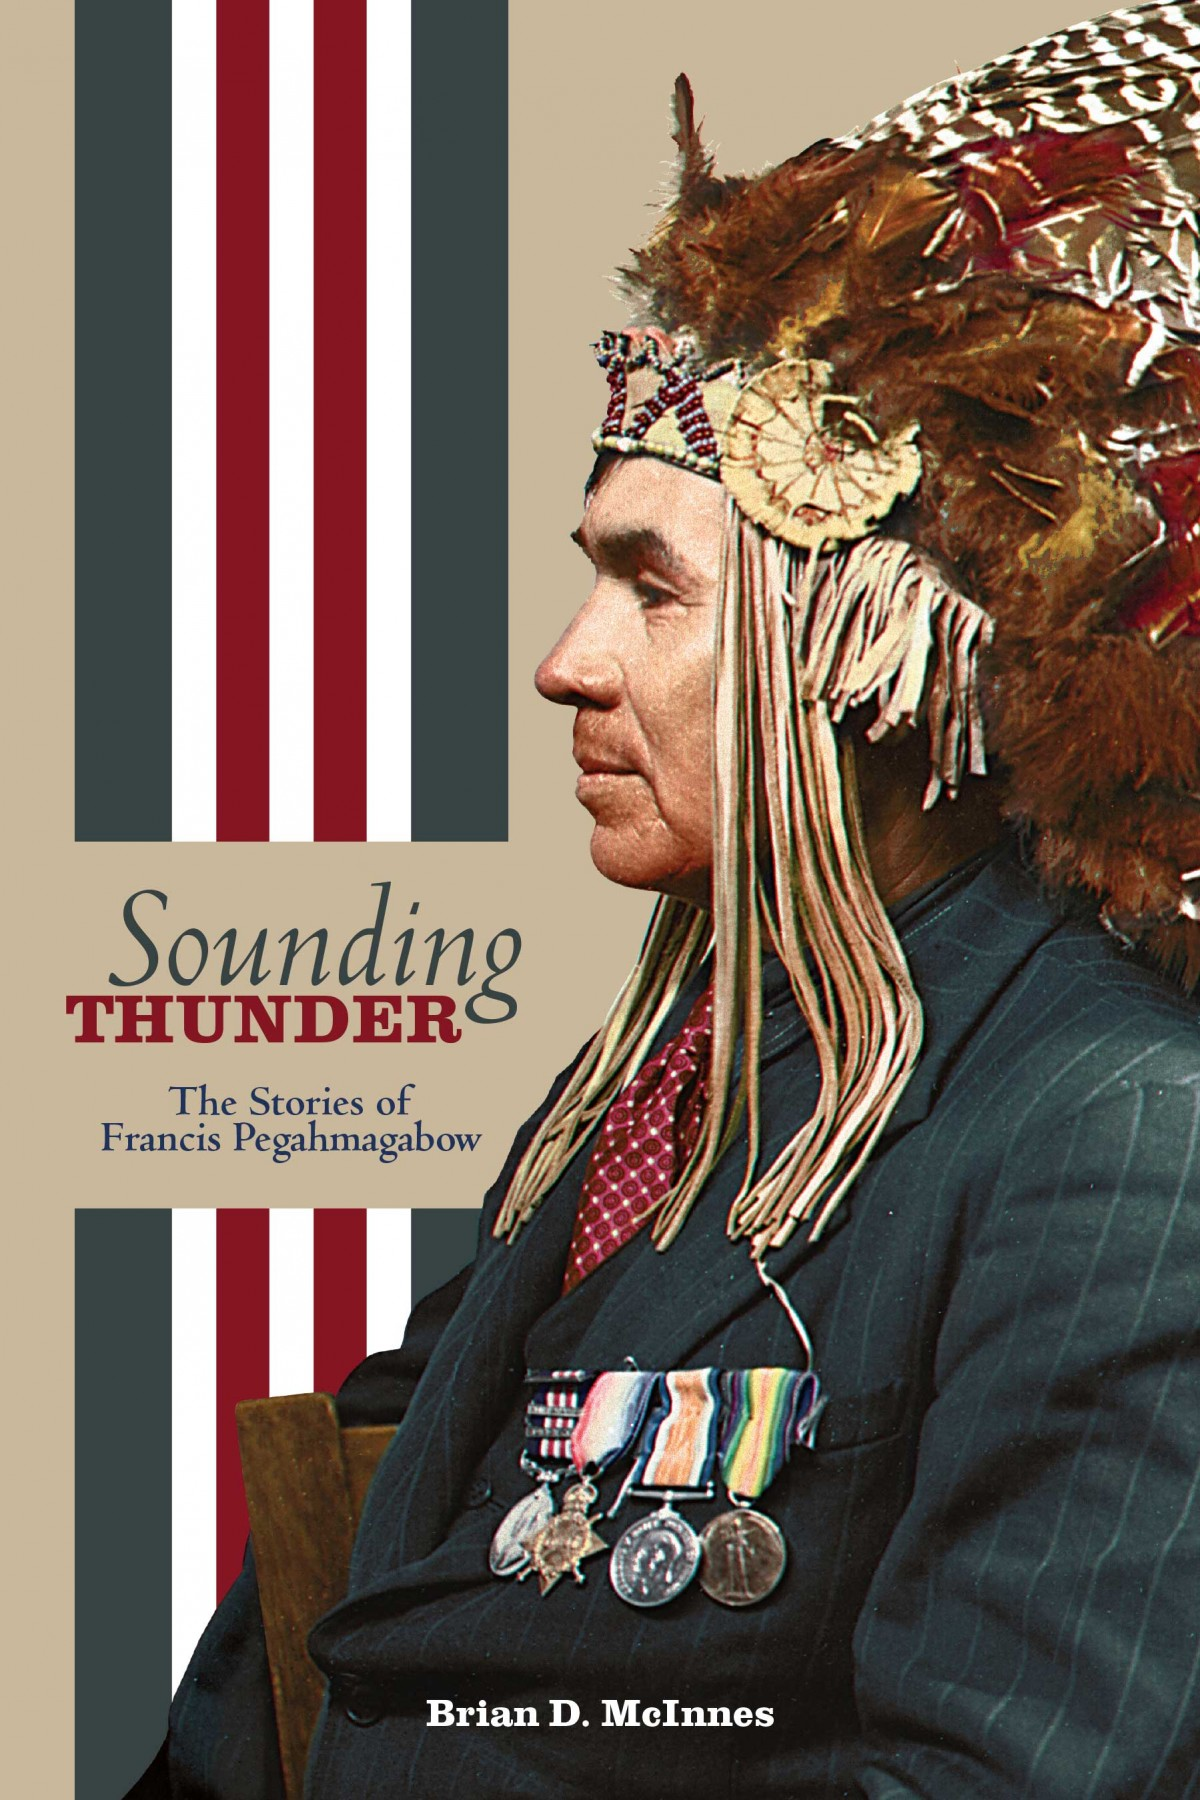 """""""Sounding Thunder: The Stories of Francis Pegahmagabow"""" by Dr. Brian McInnes (11/10/16)"""